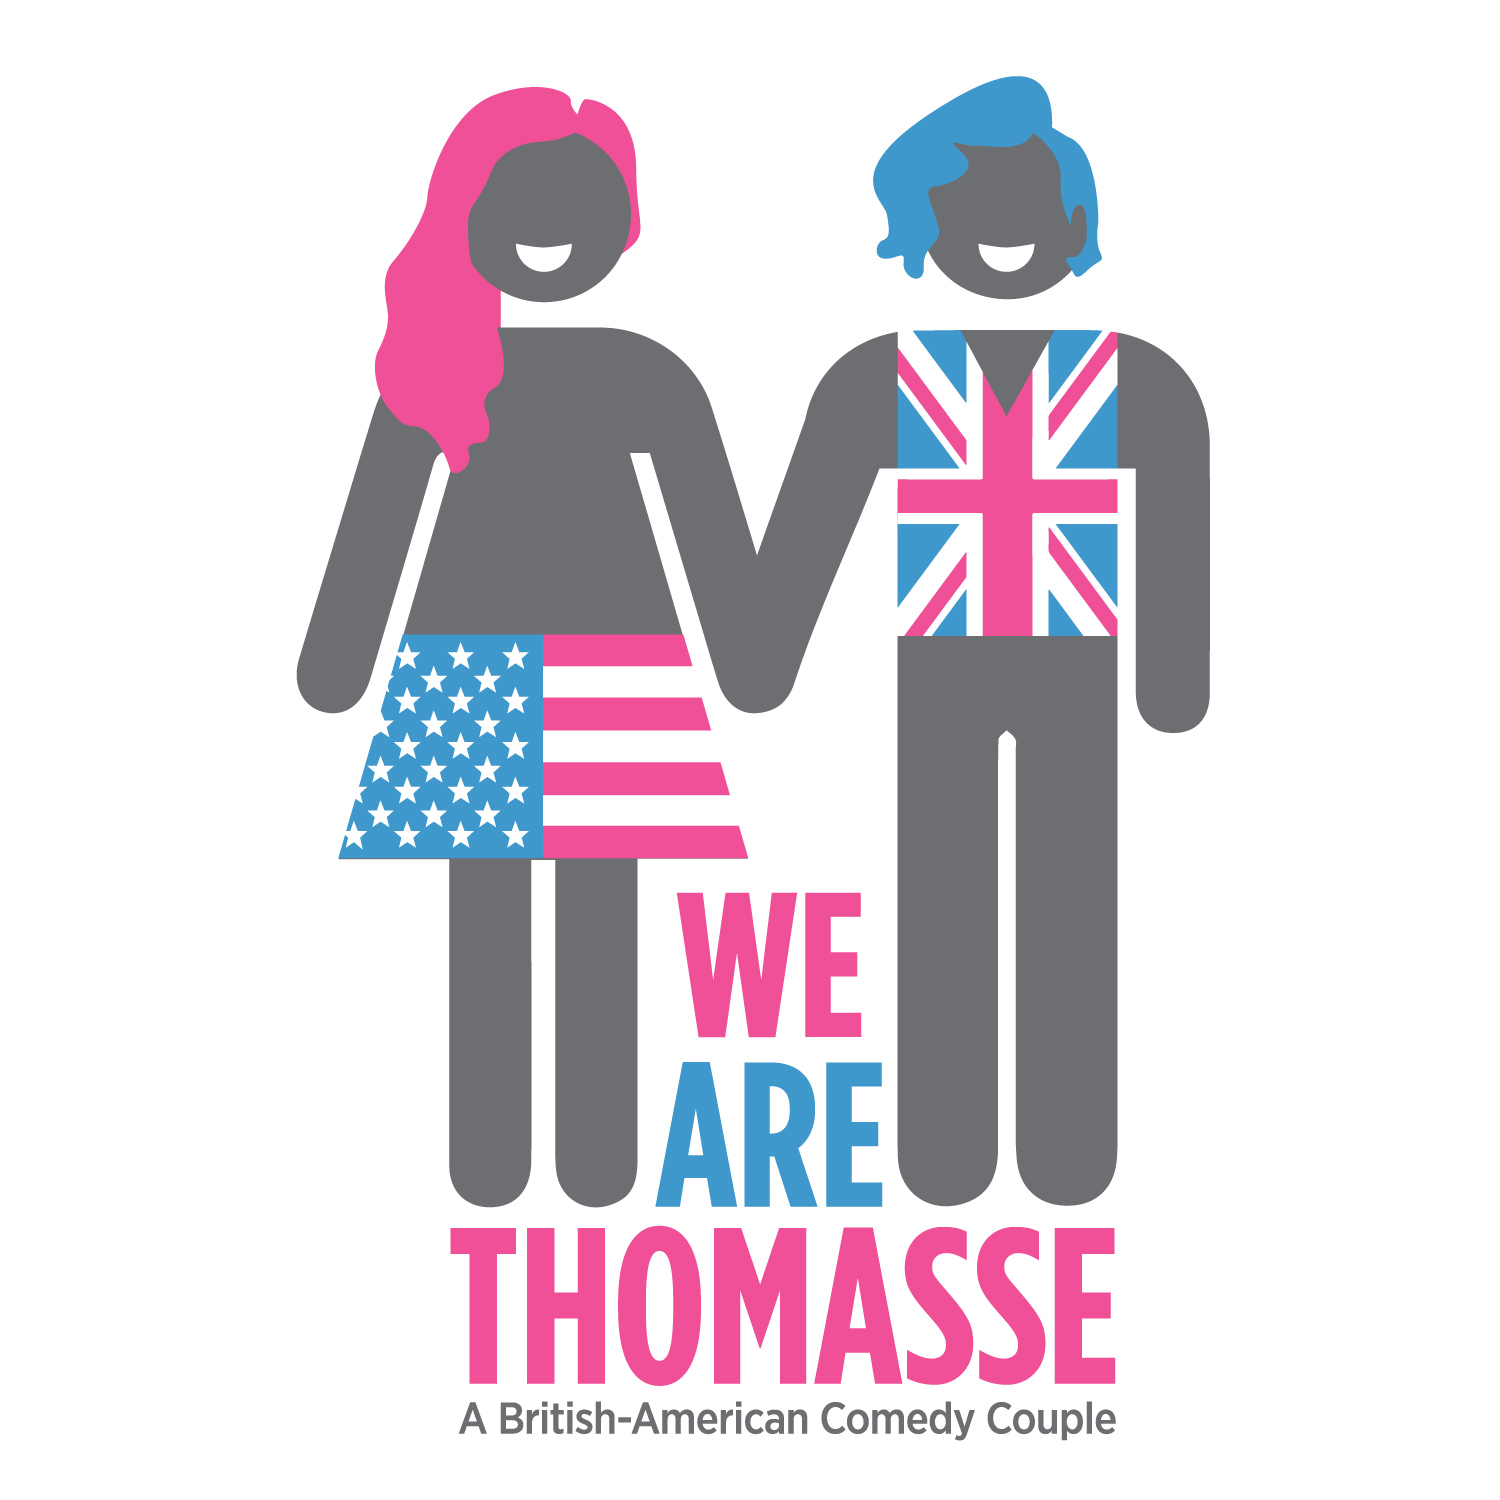 we are thomasse shows